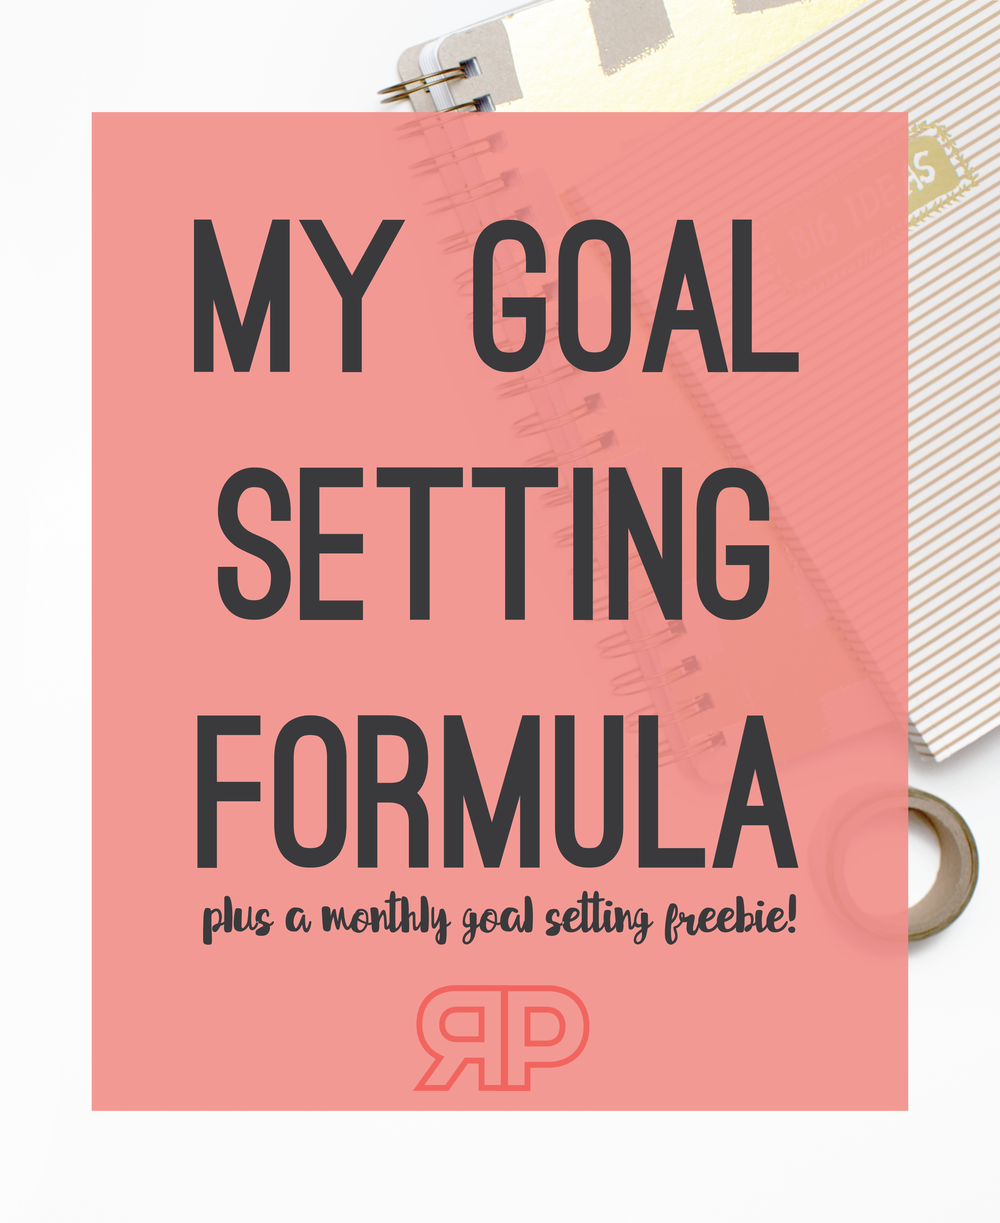 My Goal Setting Formula + A Monthly Goal Planner Freebie | Rourke Planners